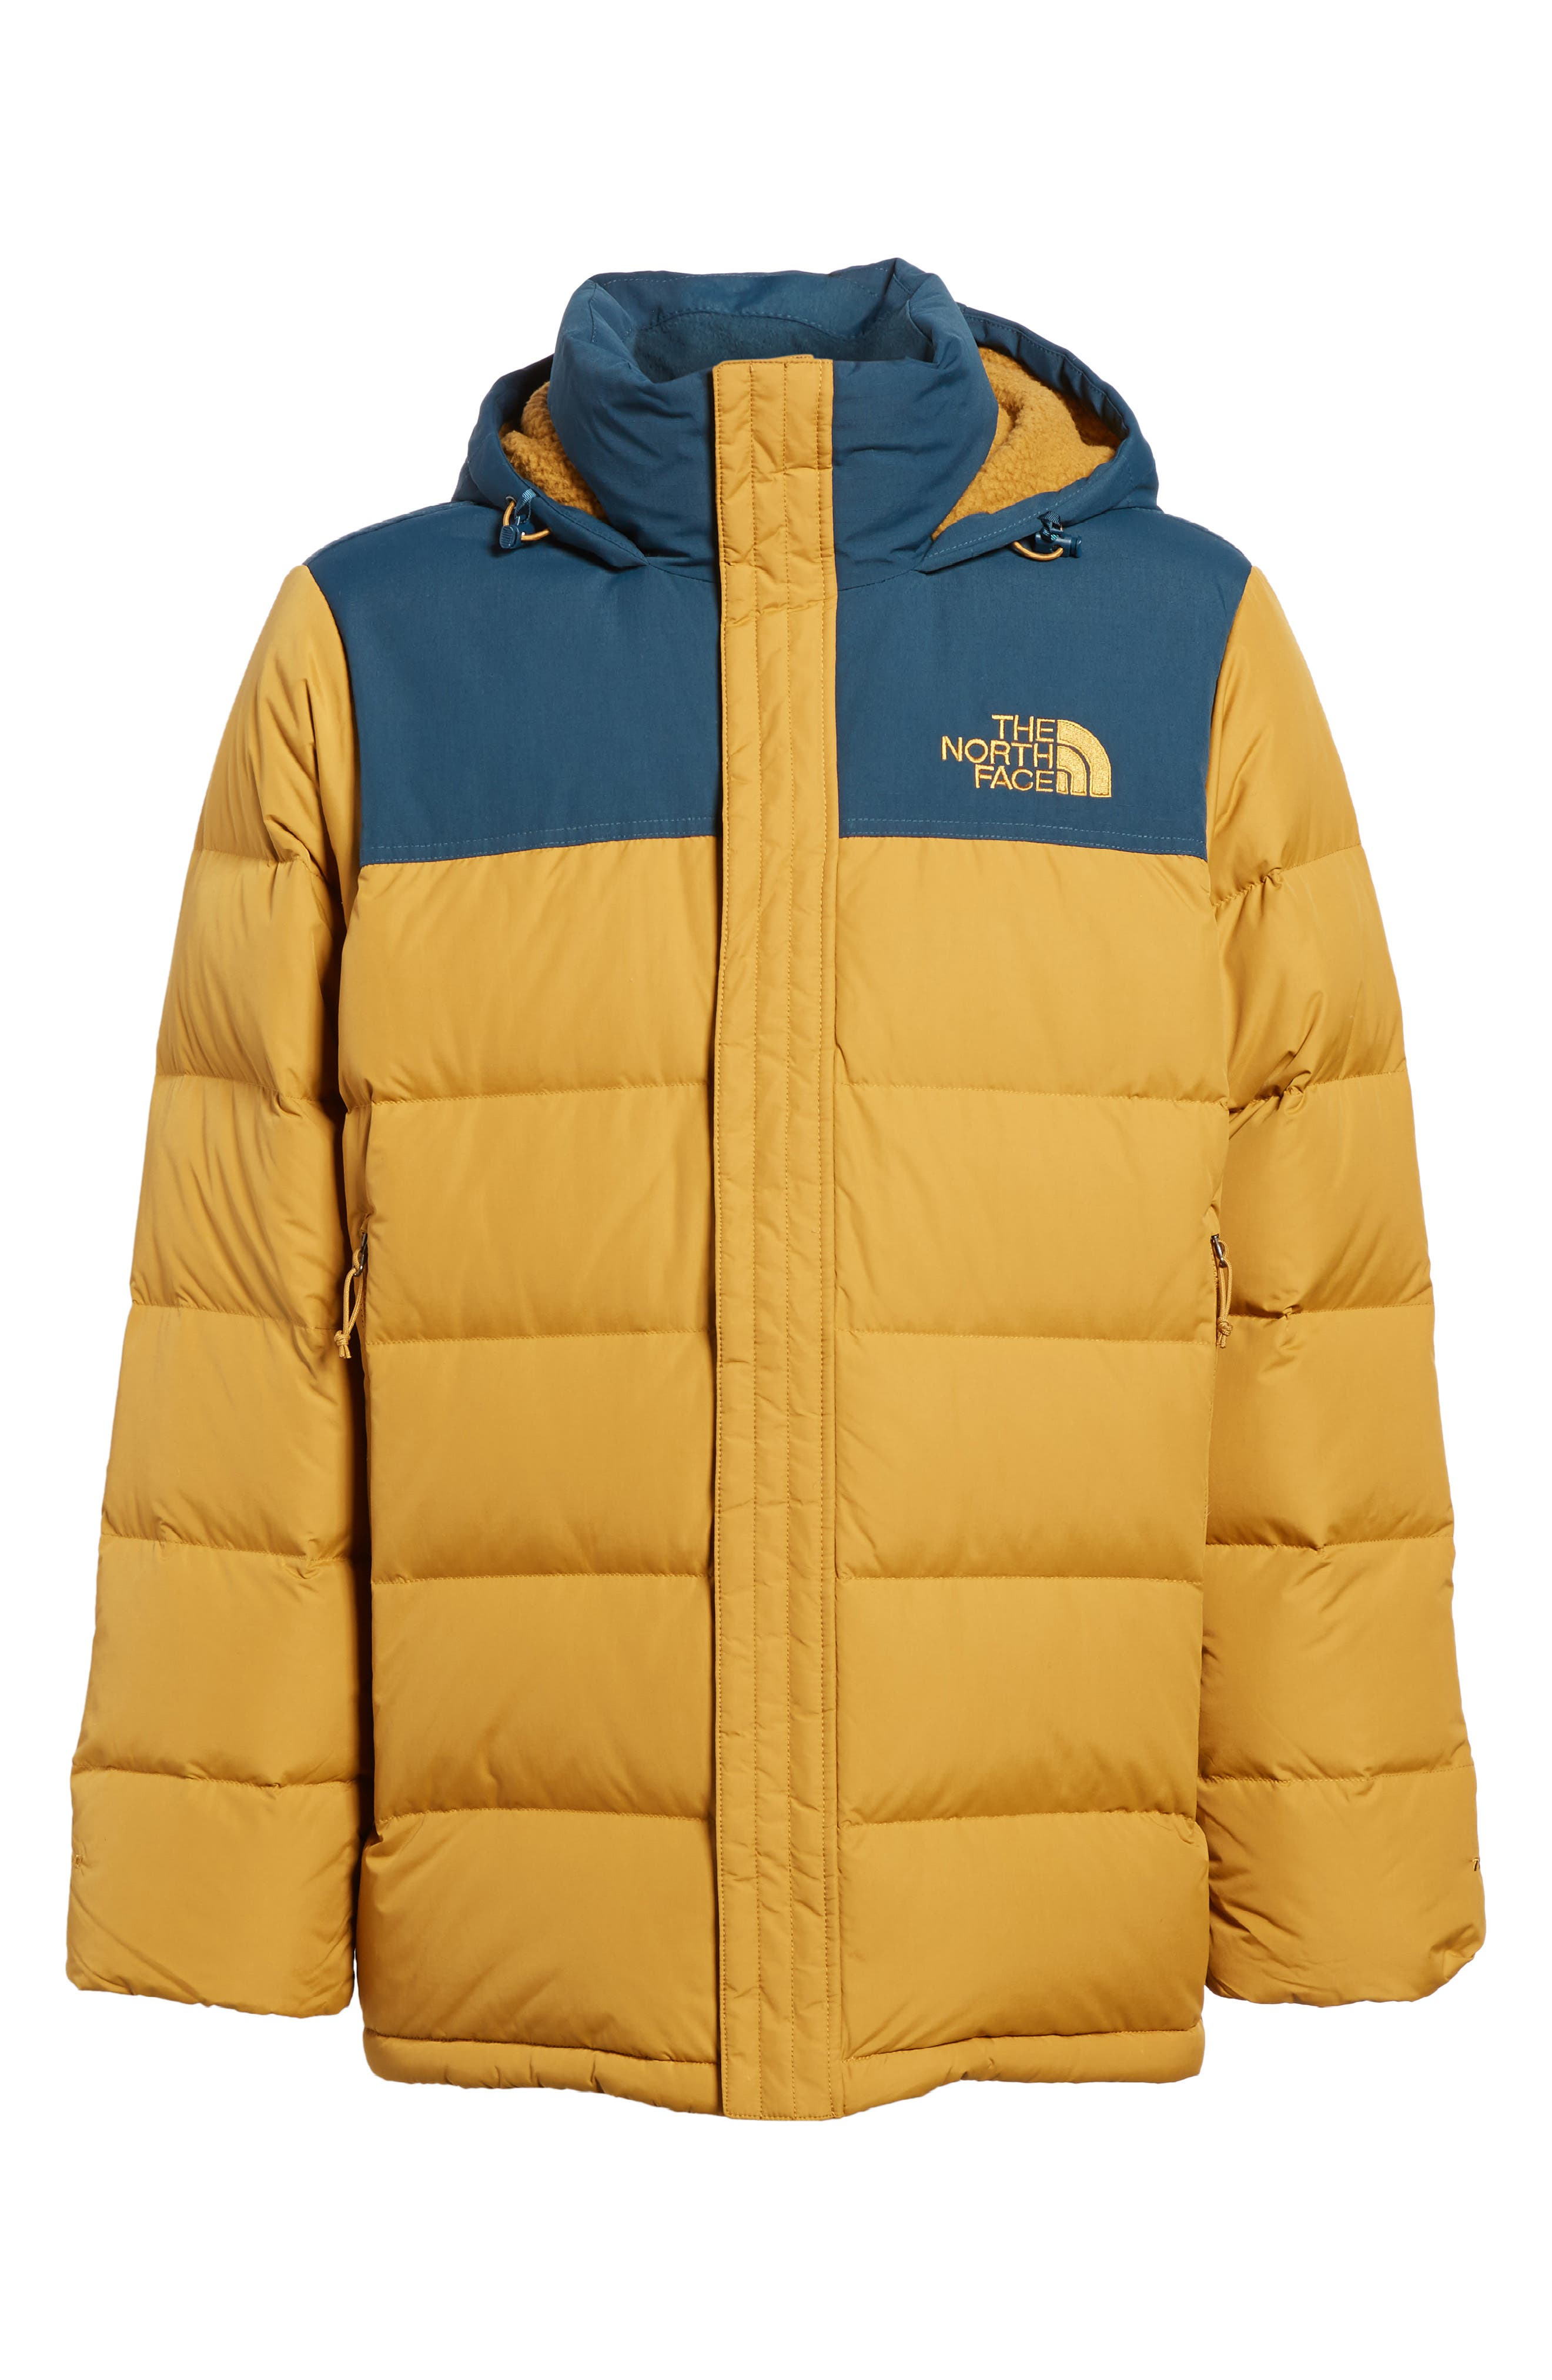 Nuptse Ridge Down Jacket,                             Alternate thumbnail 26, color,